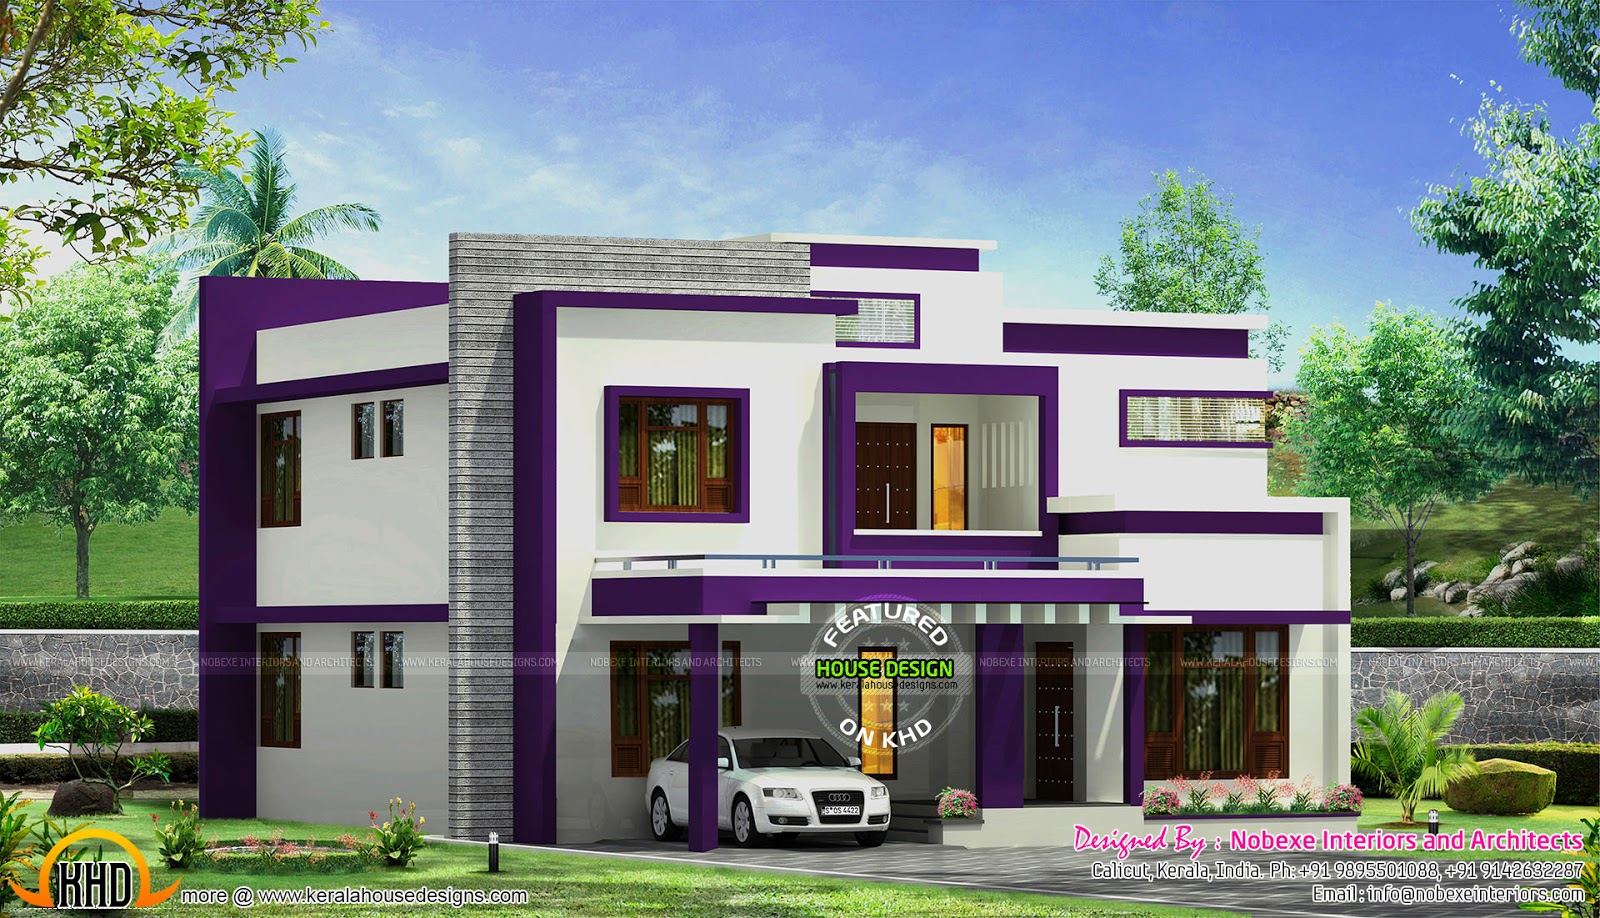 Contemporary home design by nobexe interiors kerala home for Contemporary home design